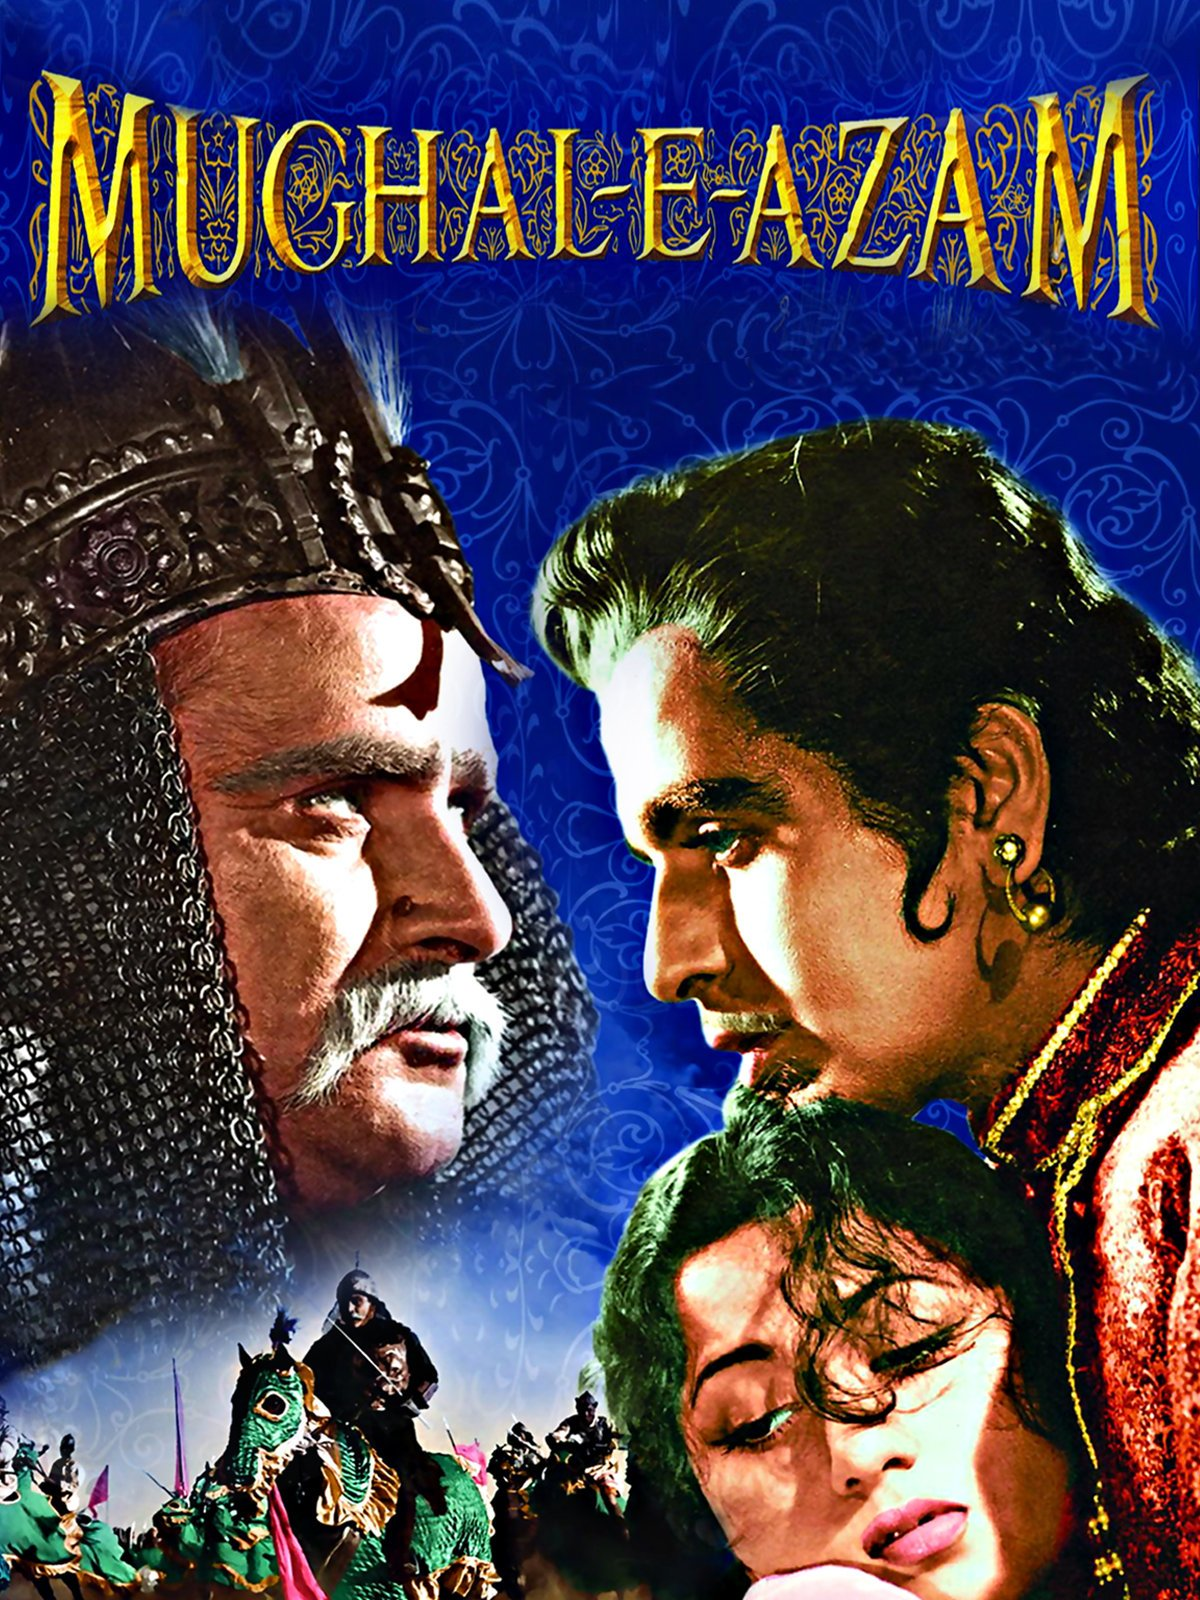 Mughal-e-Azam is one of the best old Bollywood movies